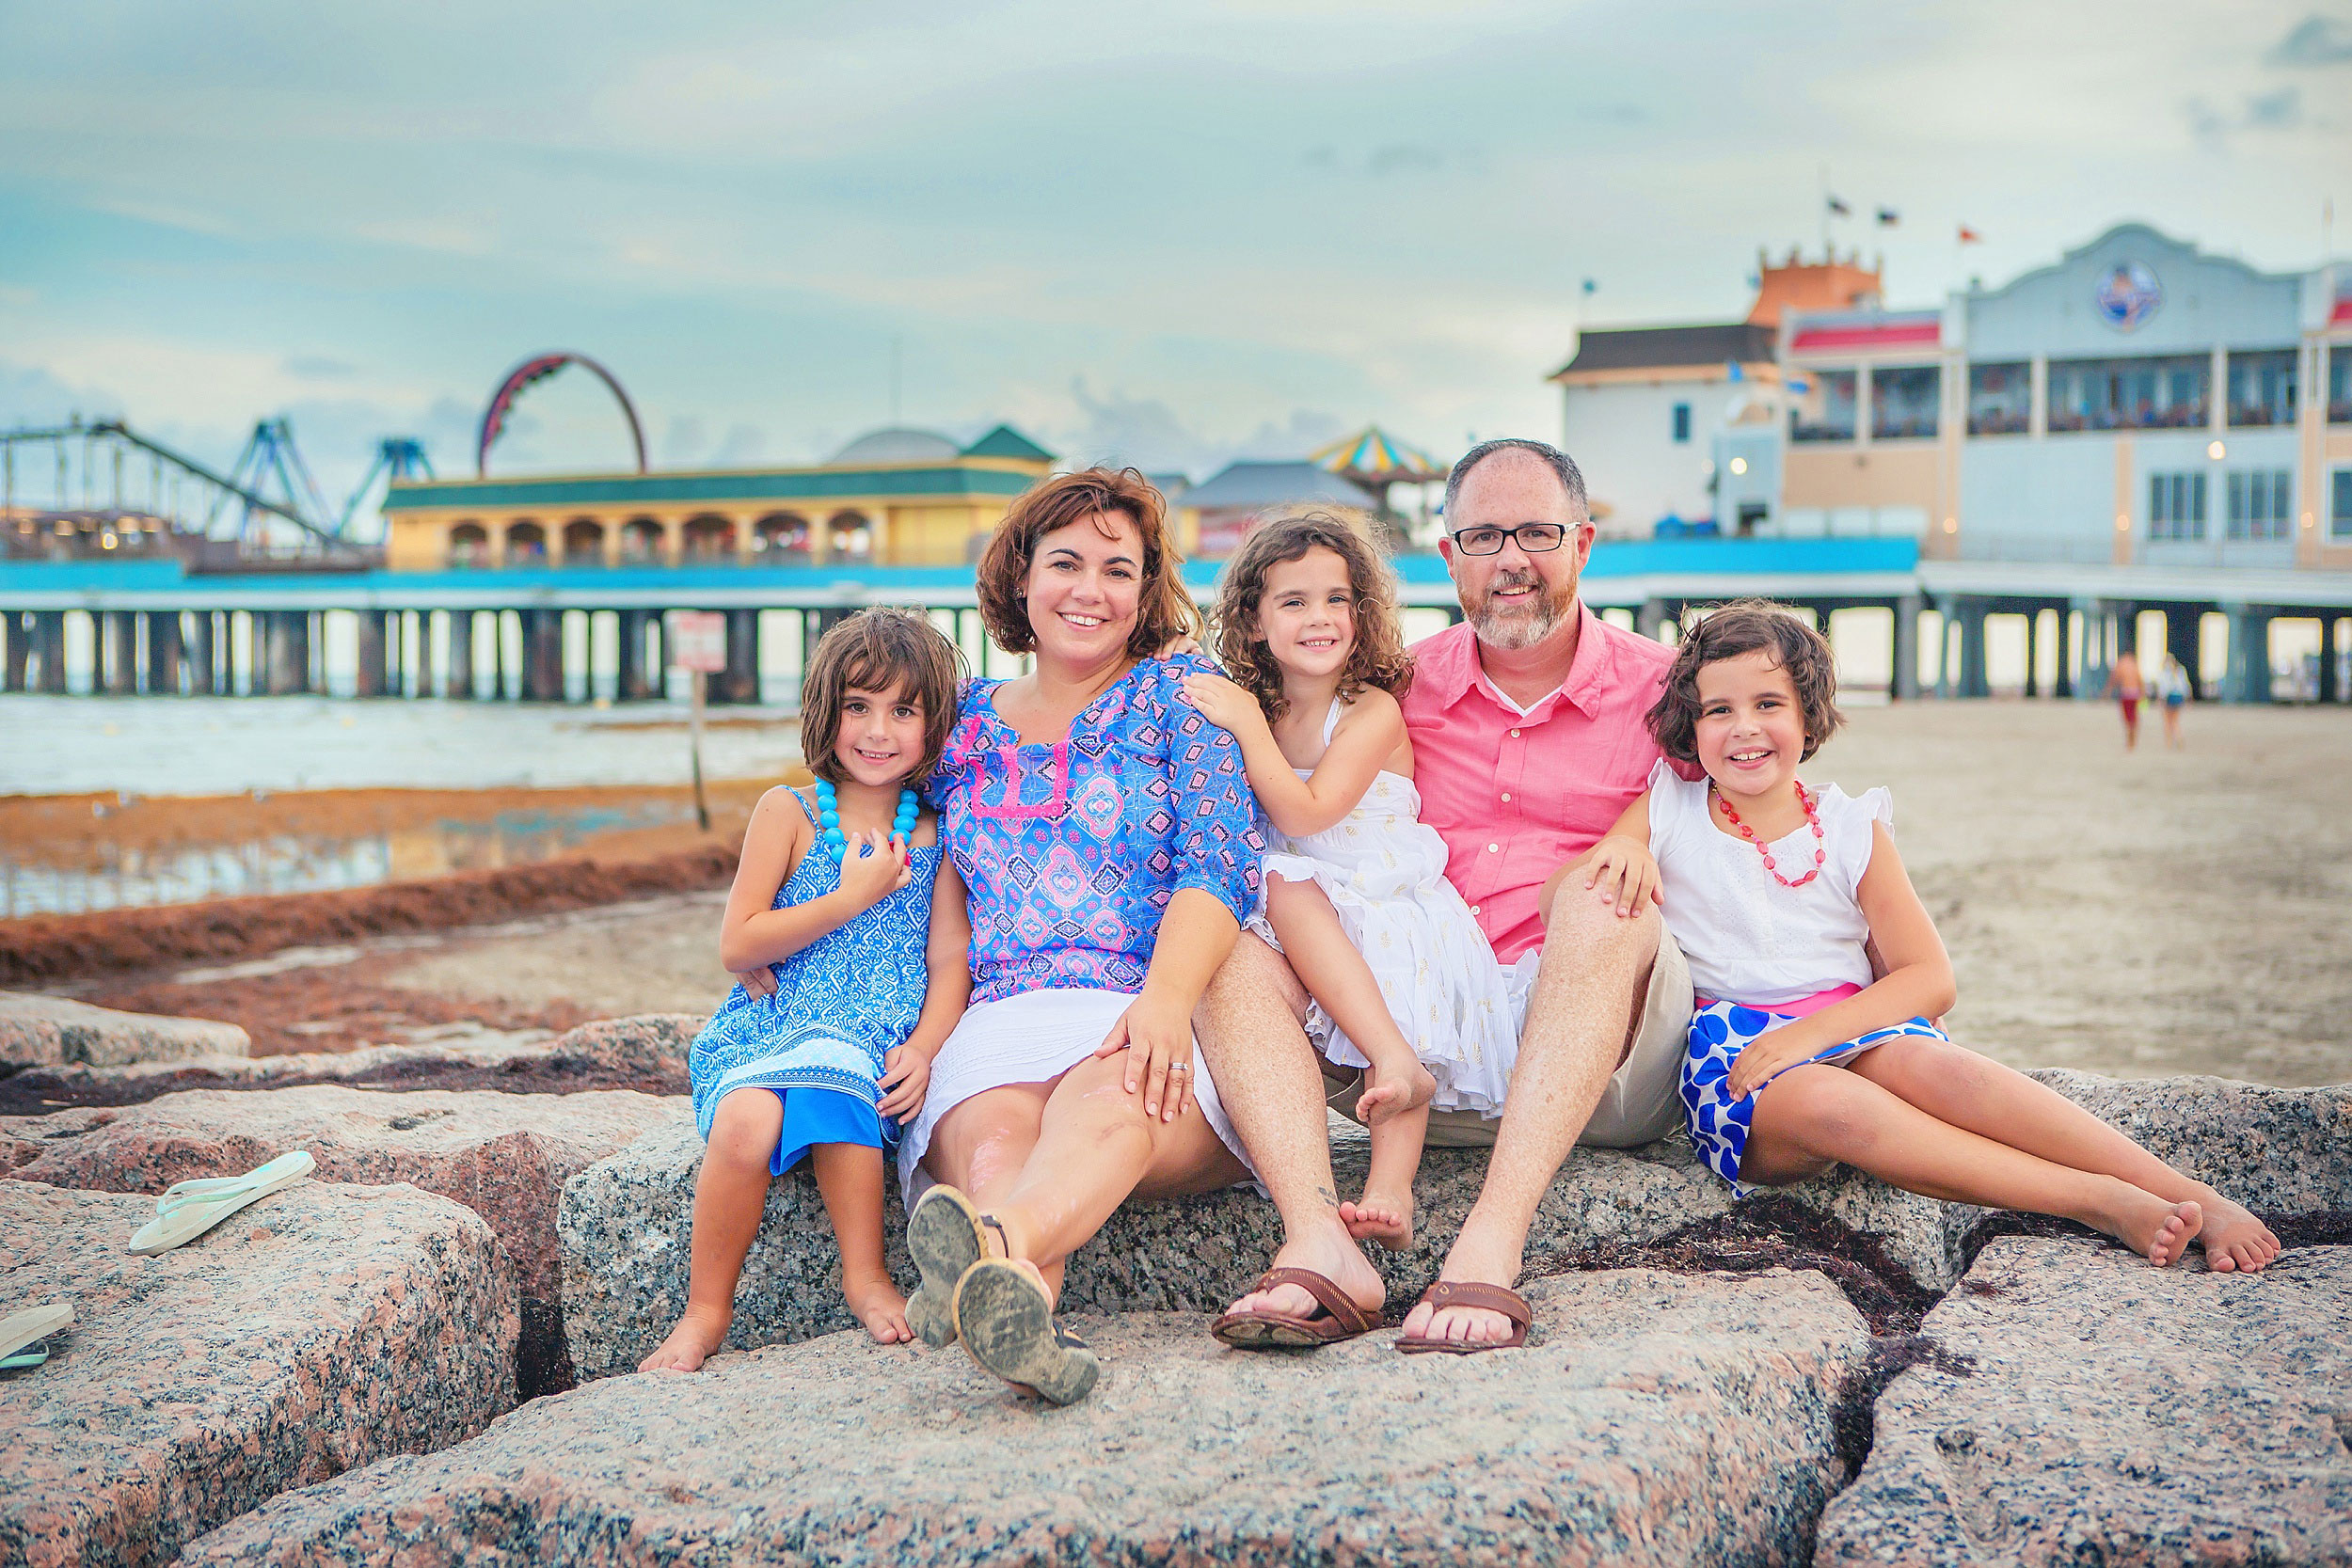 Family dressed in colorful clothes on the beach in Galveston by spryART photography.